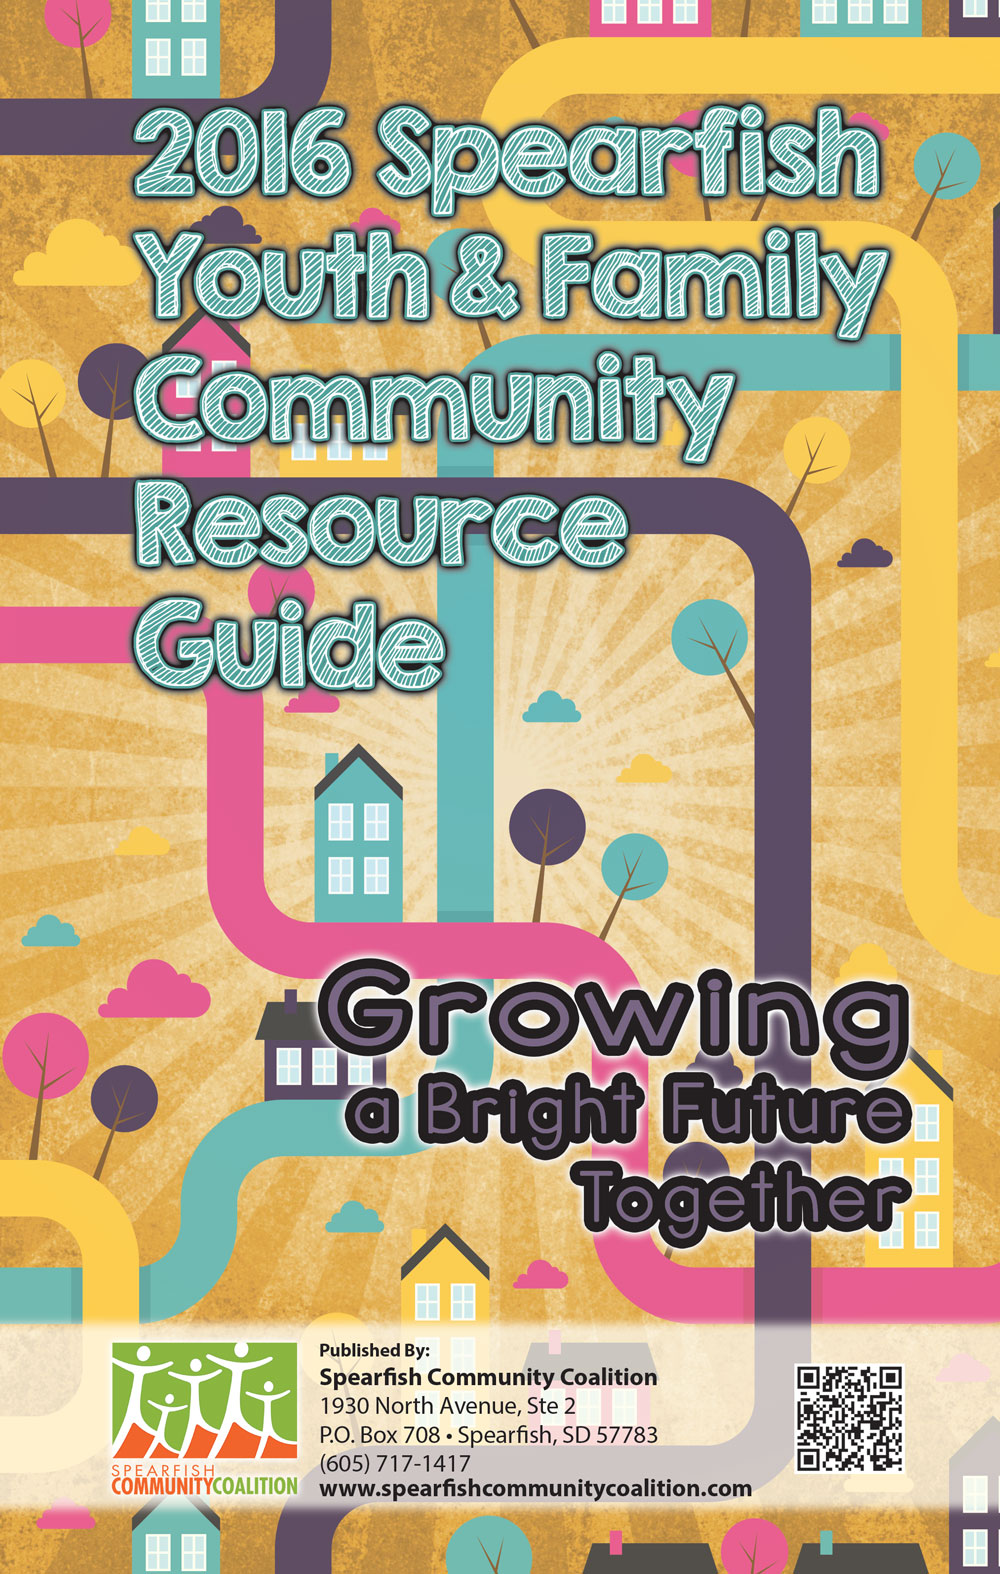 2016 Spearfish Youth and Family Community Resource Guide